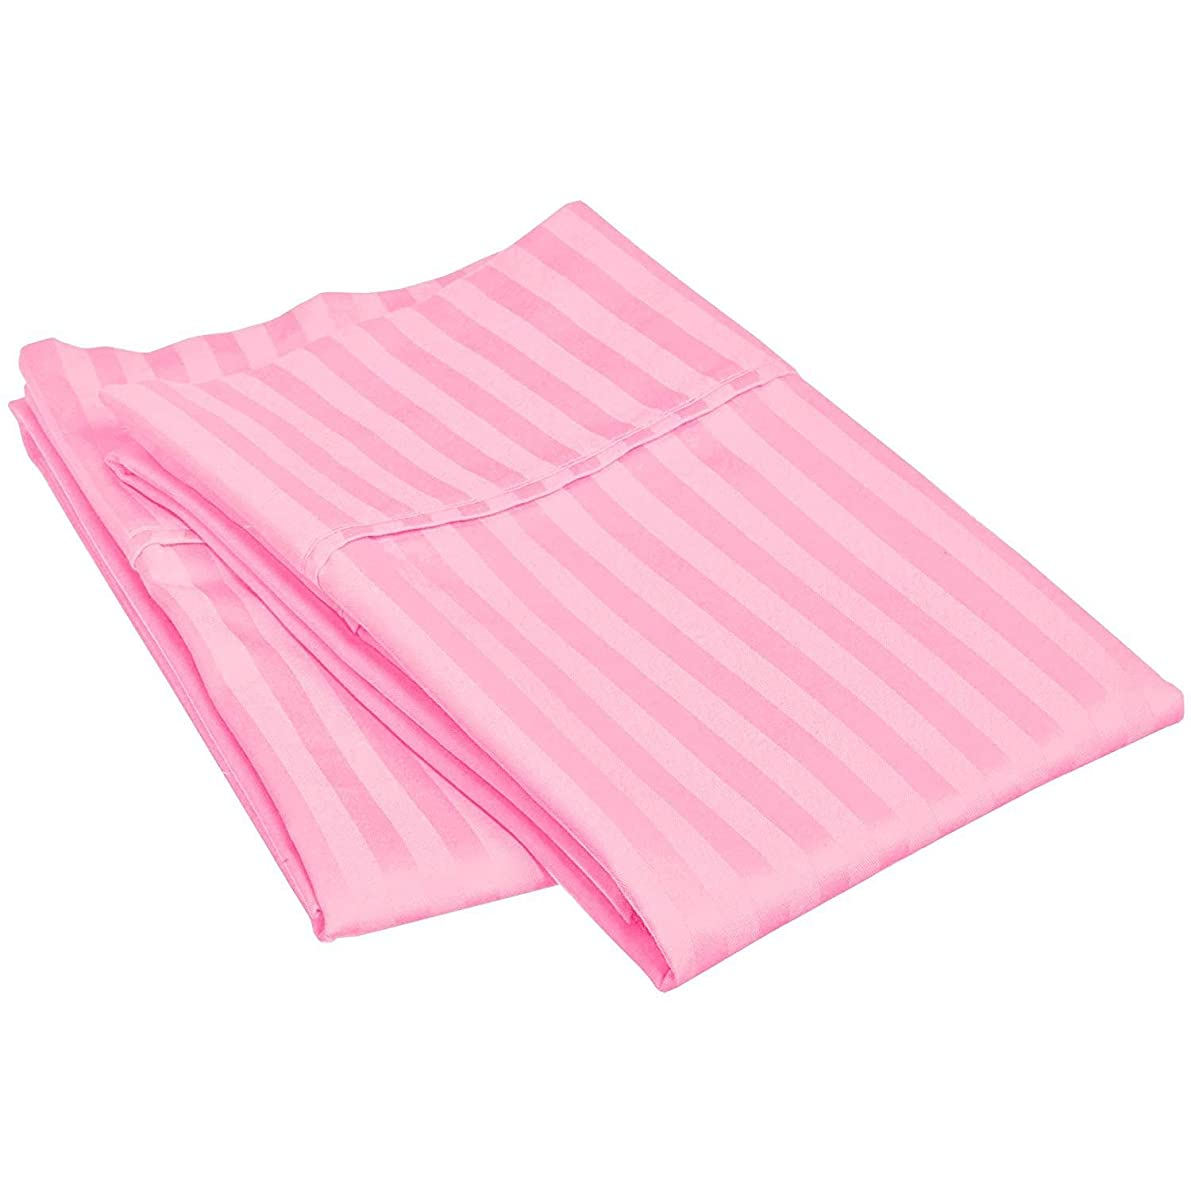 Waletone 400 Thread Count 100% Cotton Pillow Cases Set of 2 Pink Stripe Standard Size